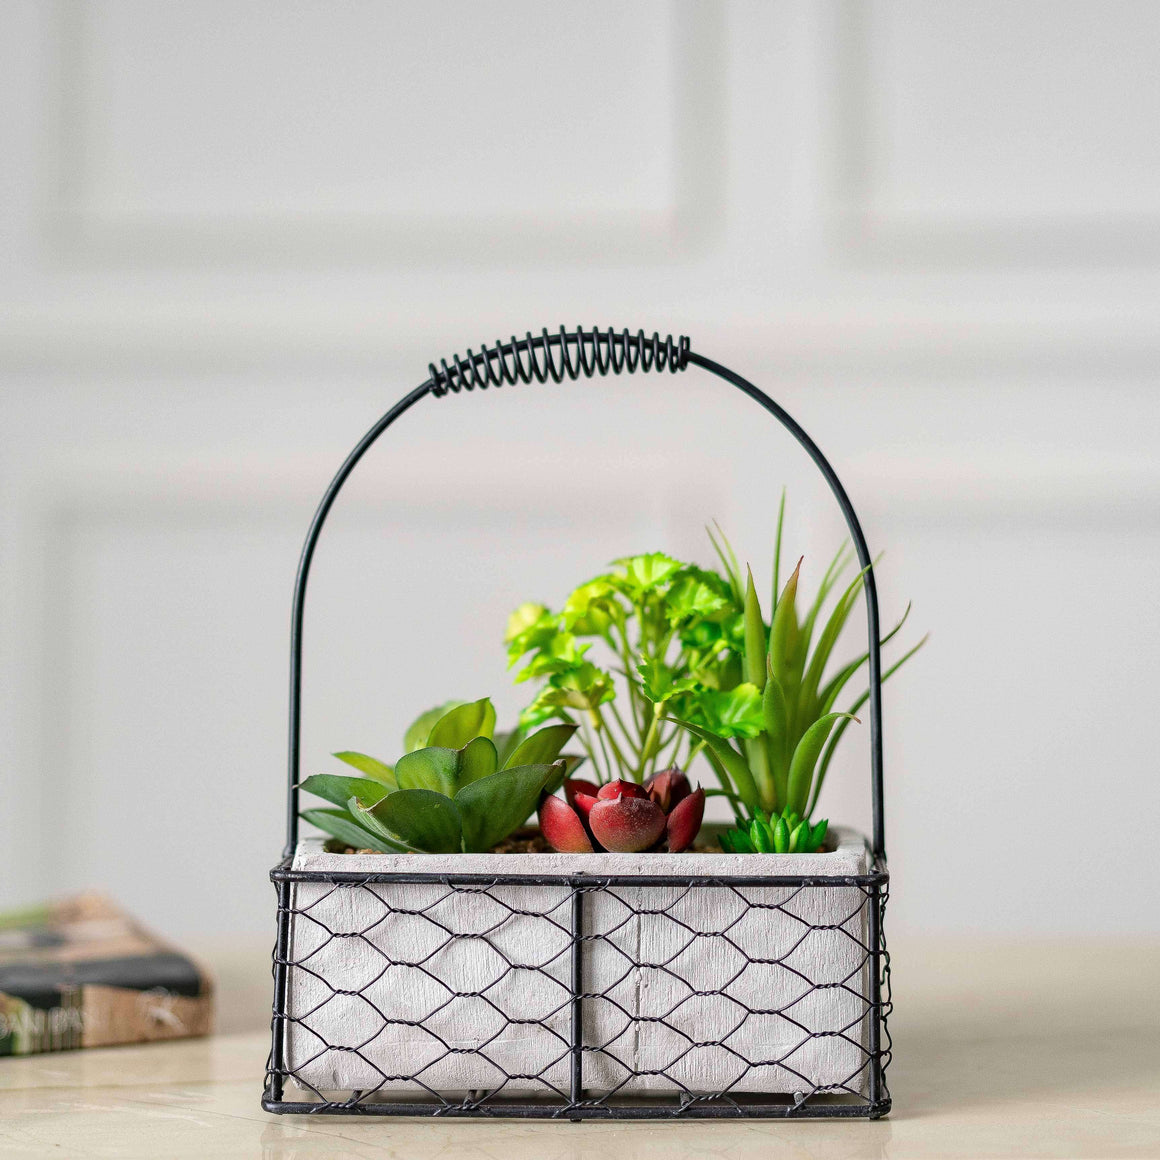 Faux Potted Plants with Iron Caddy